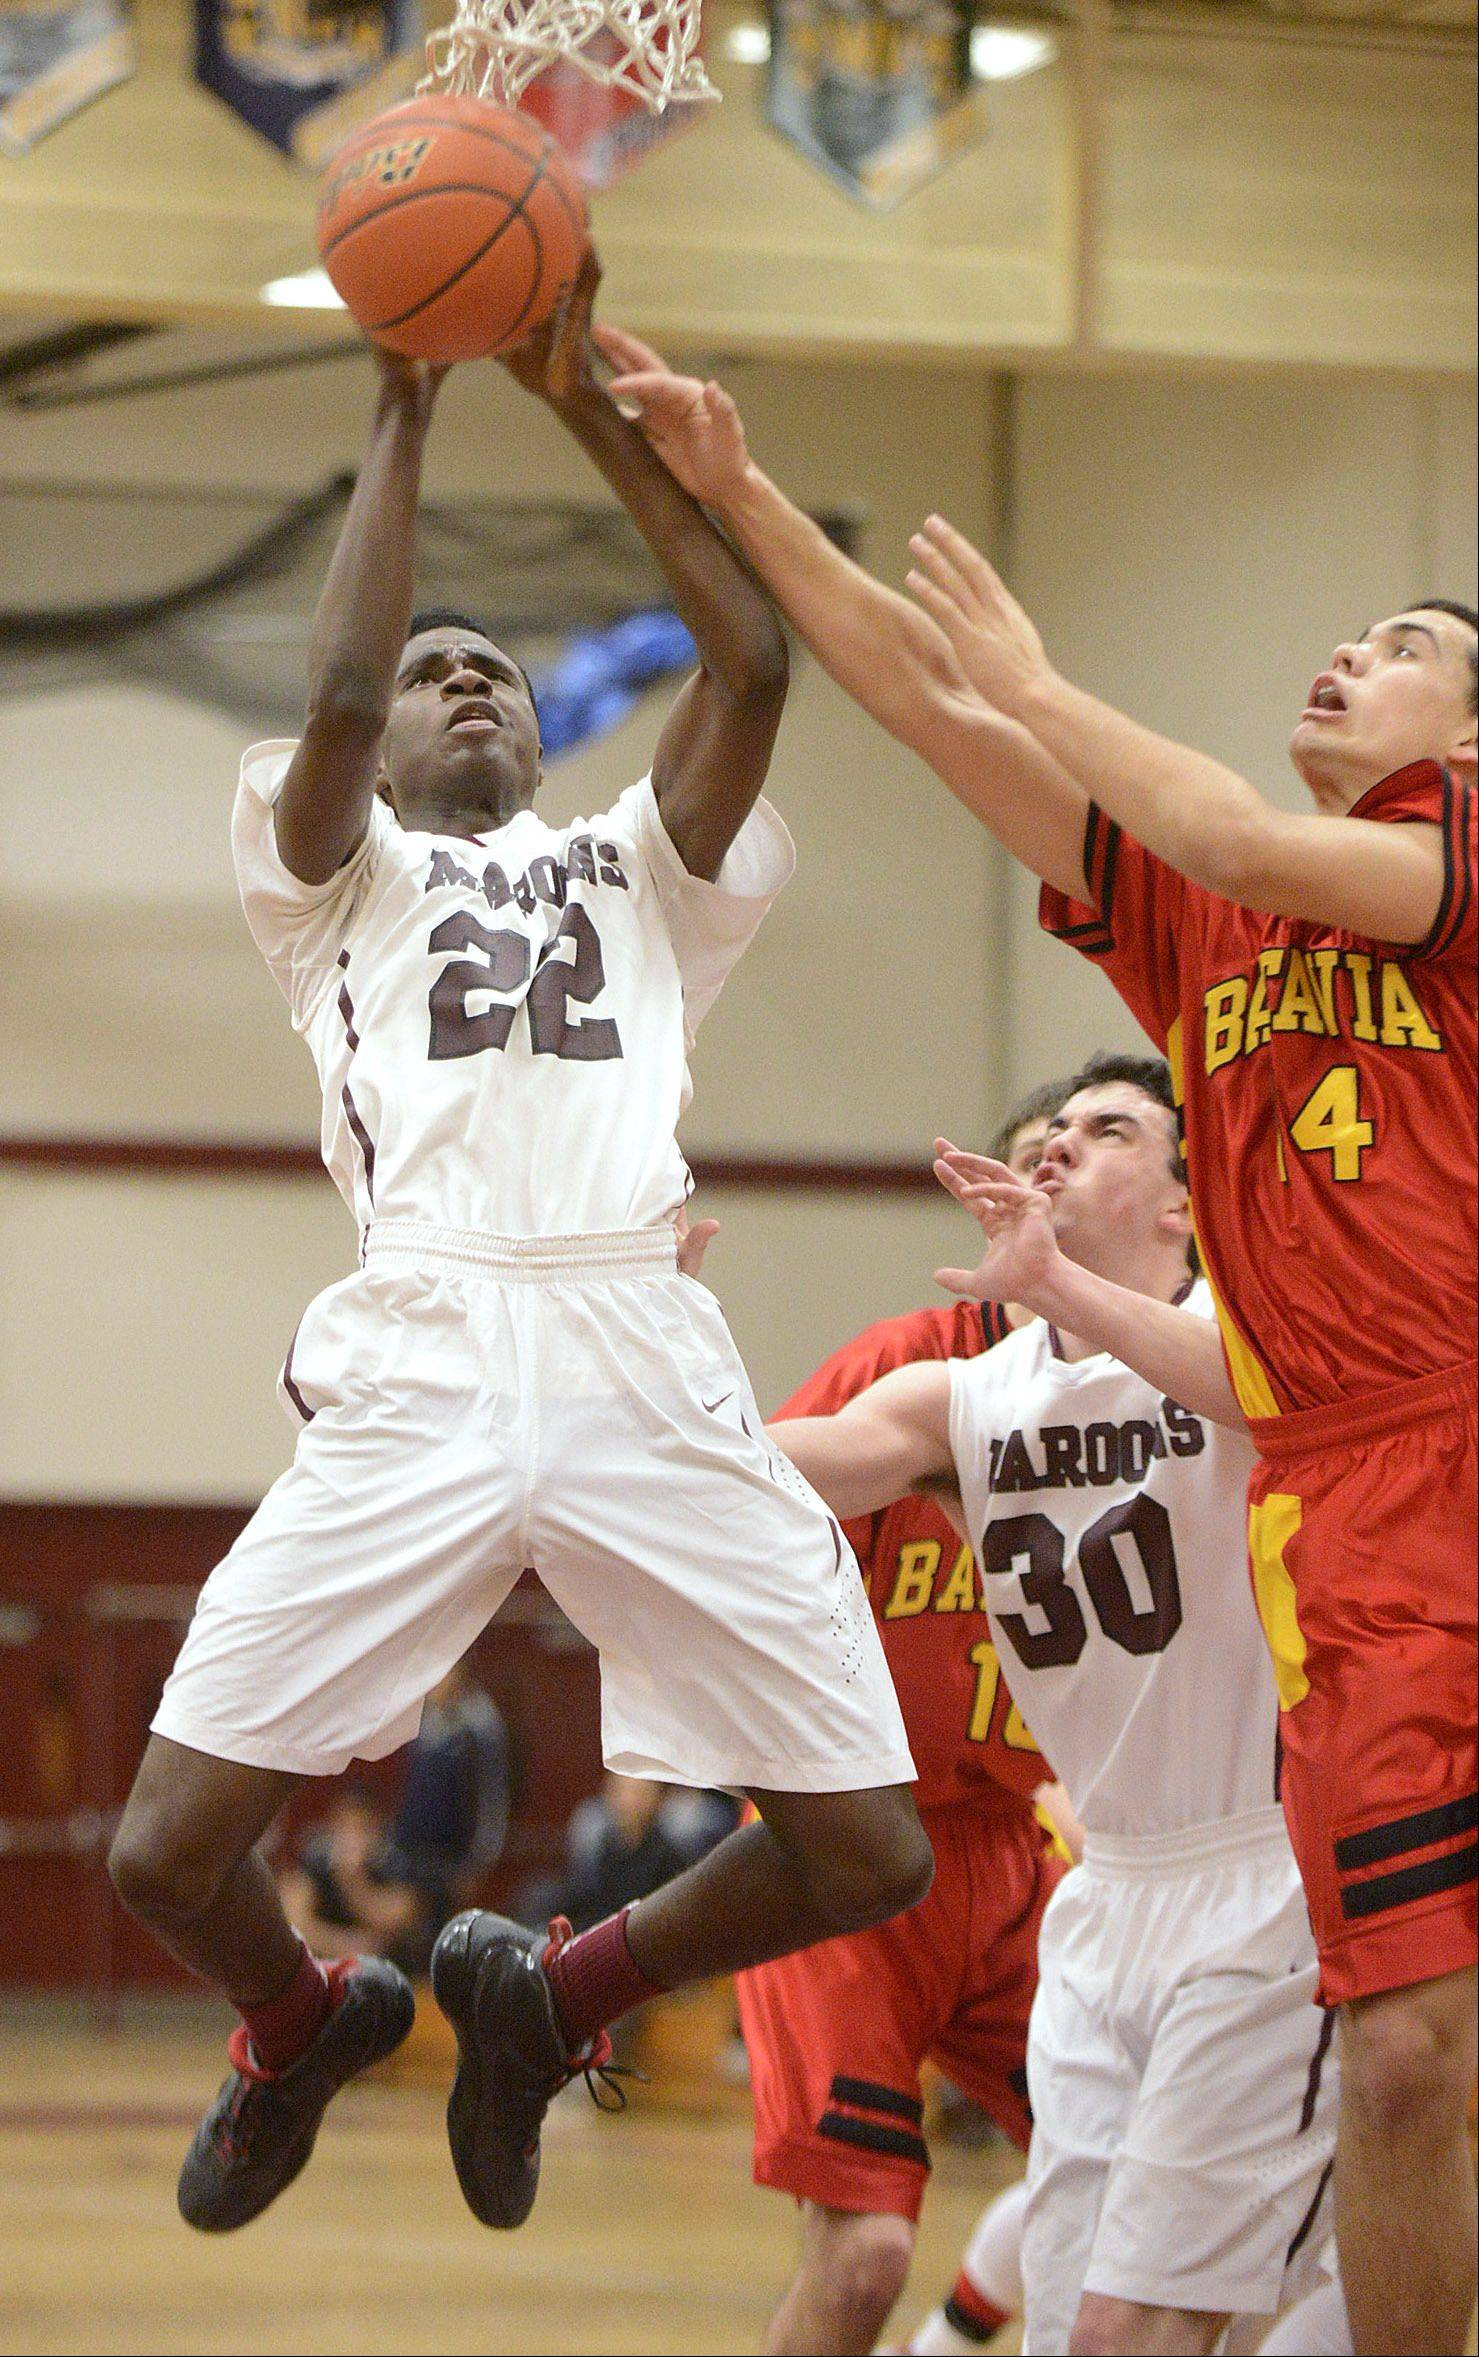 Elgin's Desmond Sanders sinks a shot around Batavia's Micah Coffey in the third quarter on Saturday.